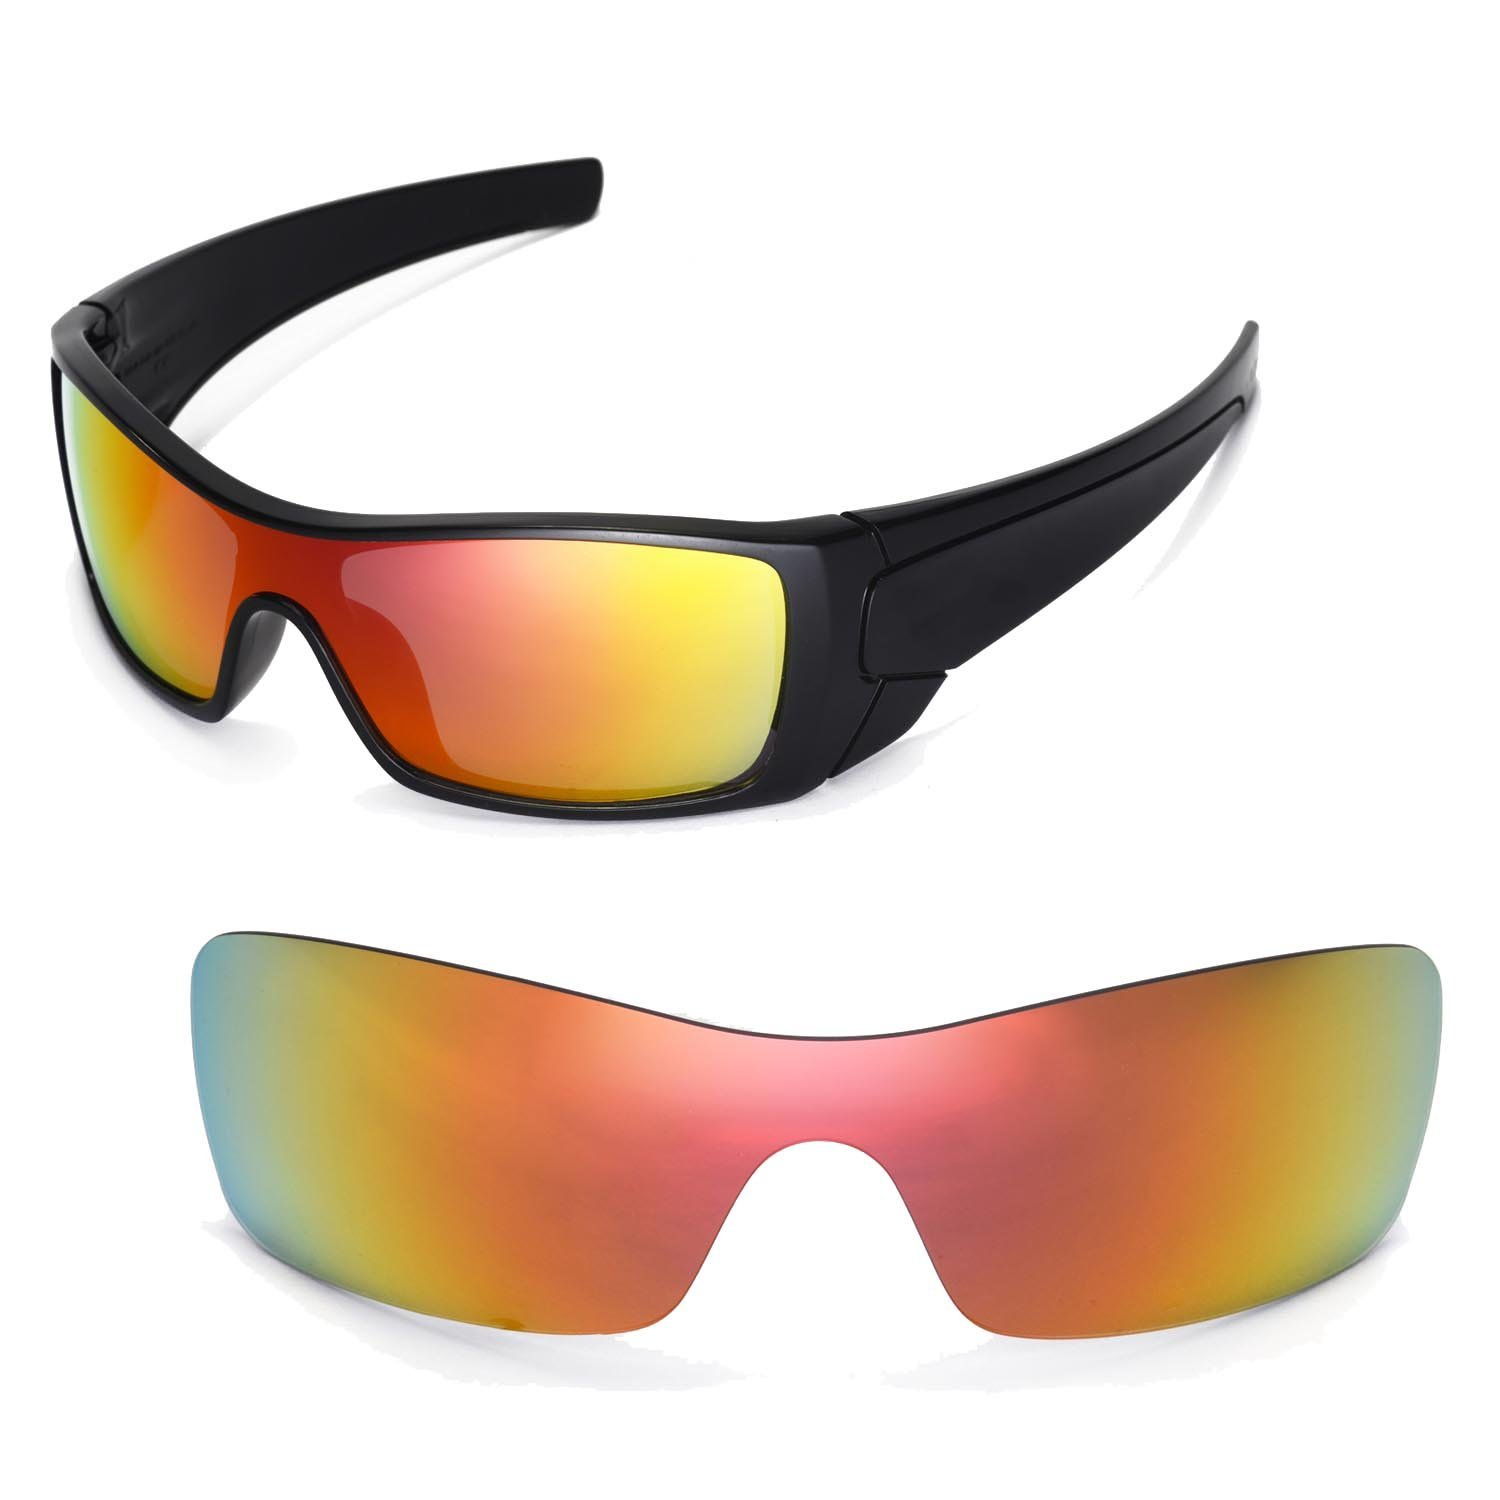 ed9796770a Amazon.com   Walleva Replacement Lenses for Oakley Batwolf Sunglasses -  Multiple Options Available (